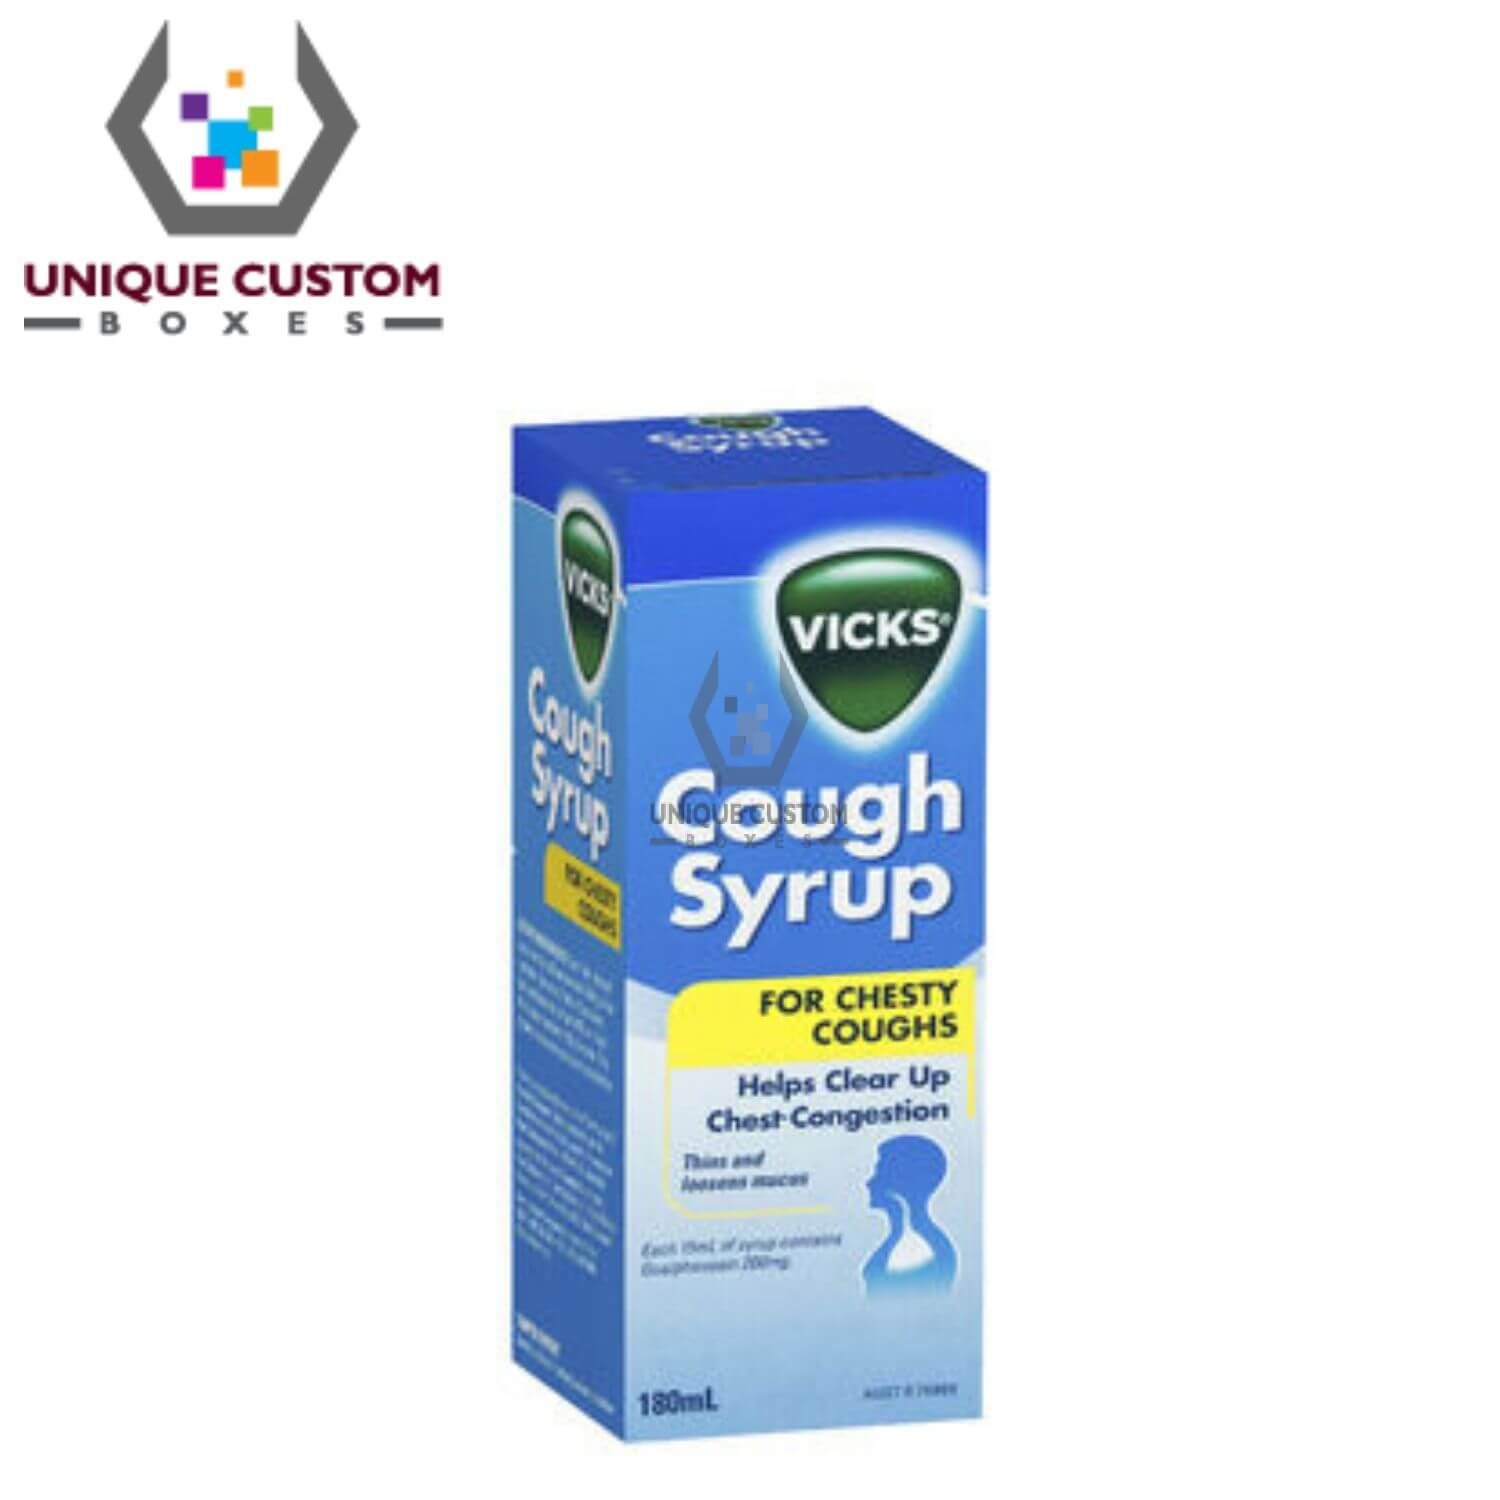 Cough Syrup Boxes-2